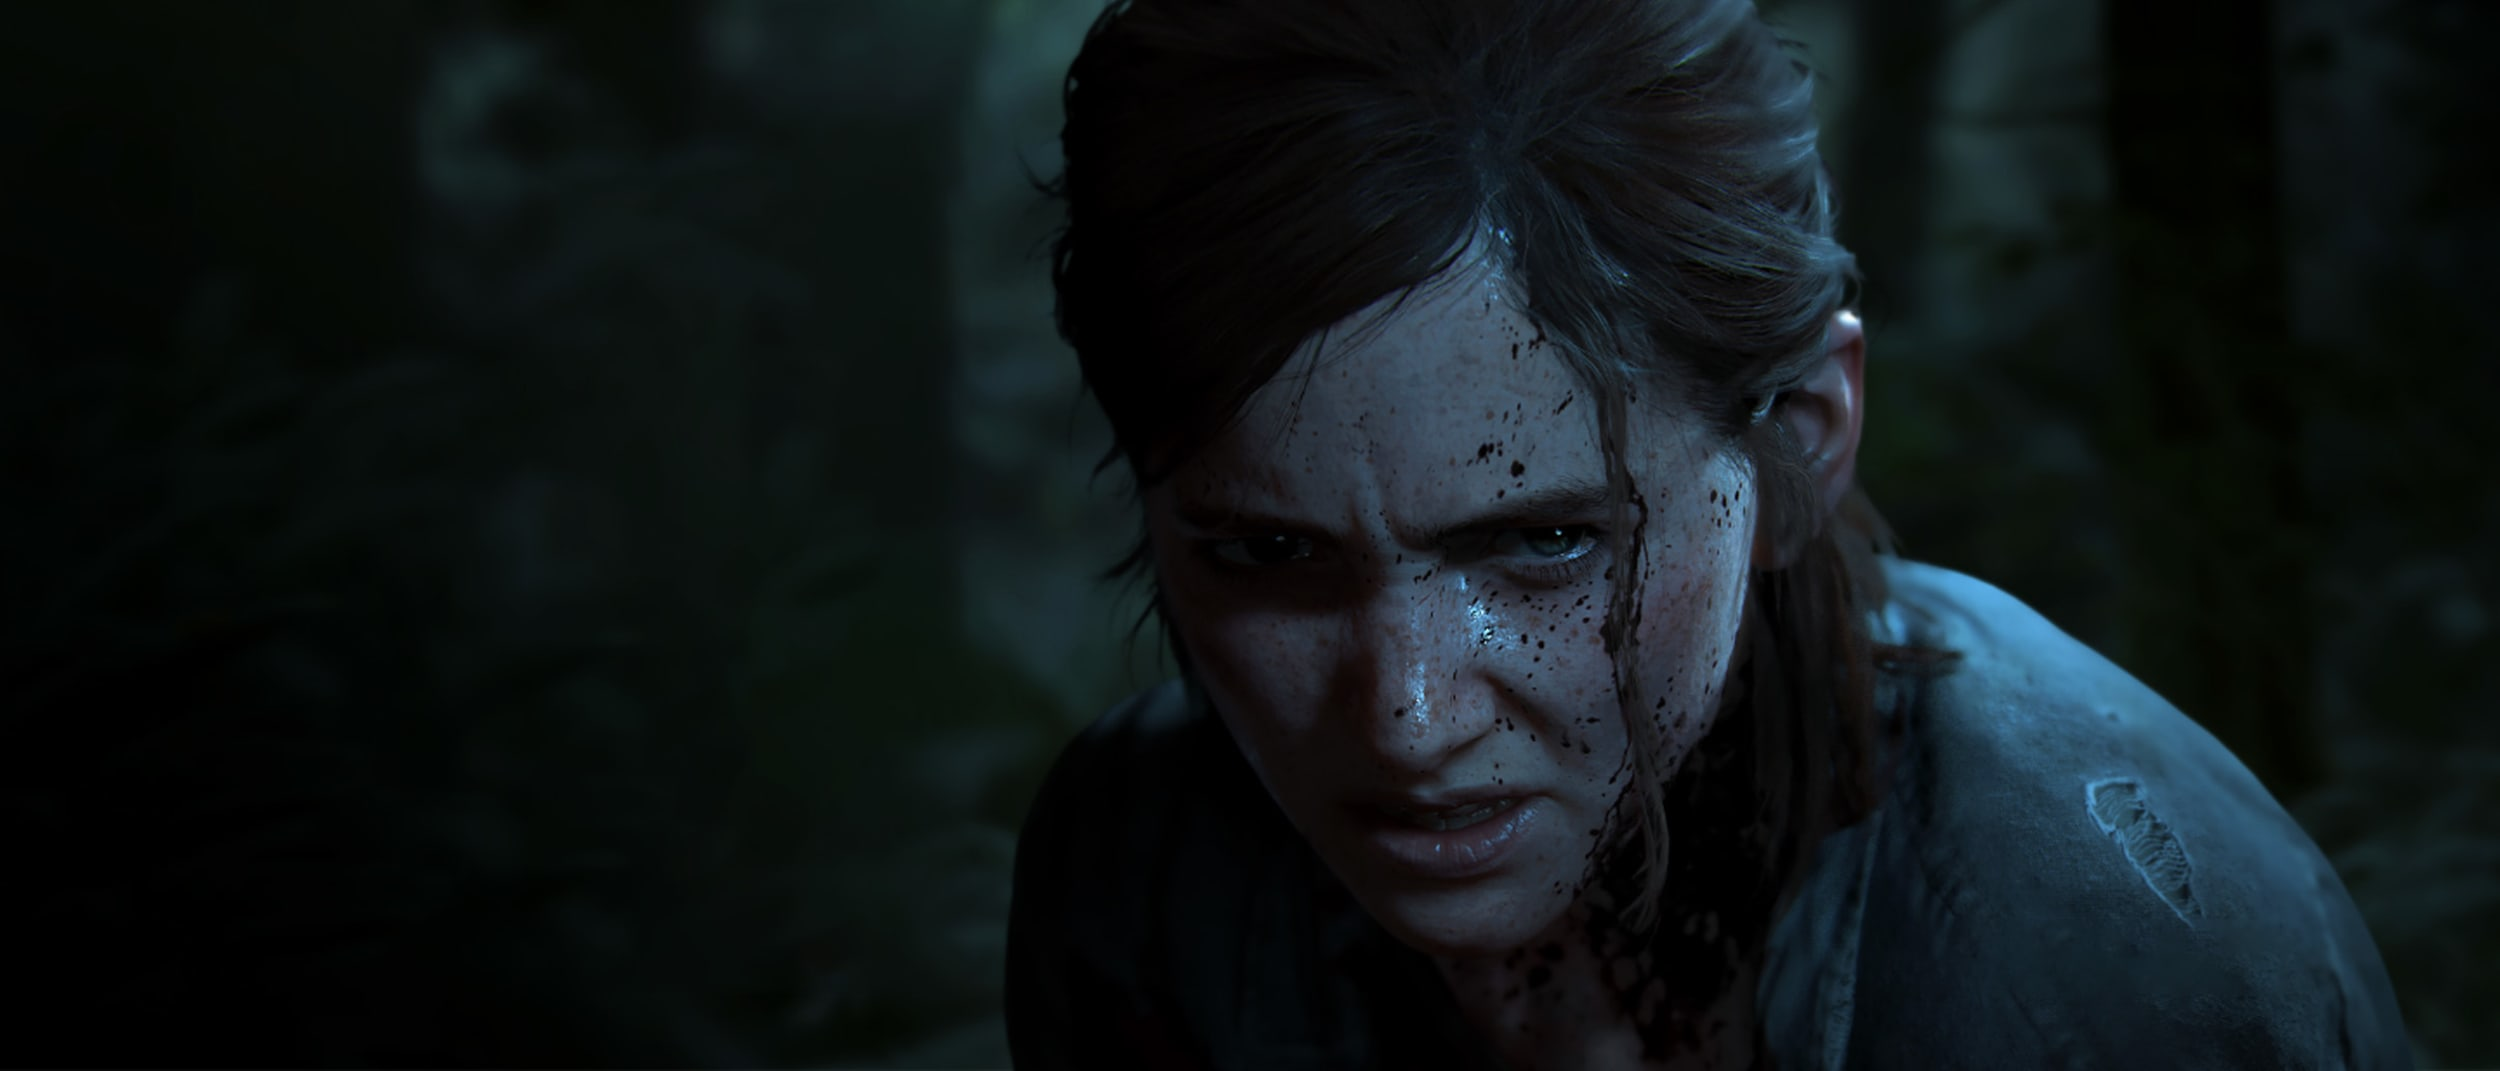 Where to buy The Last of Us Part 2